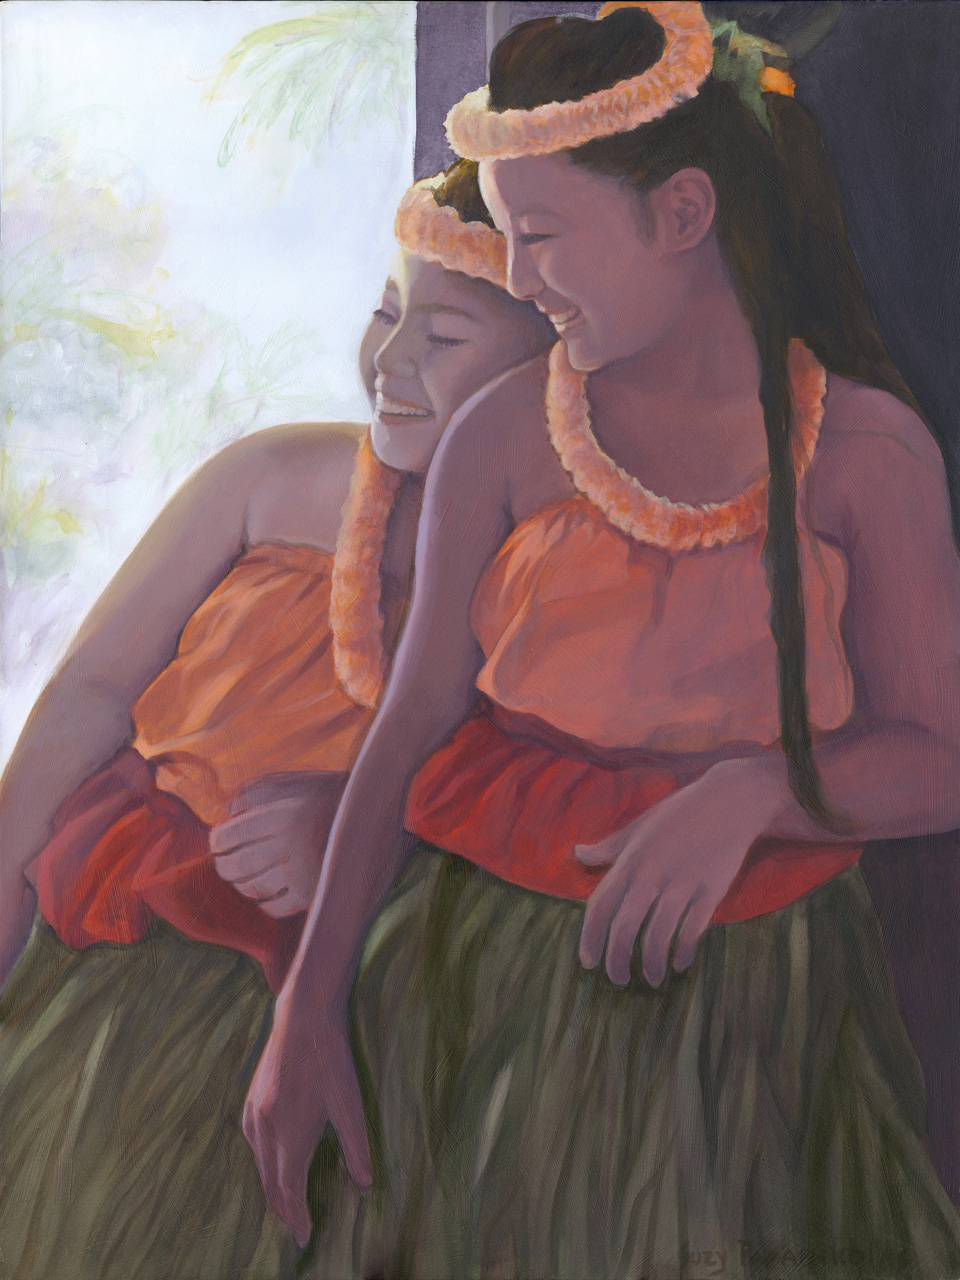 Two young sisters laughing while in their orange and red hula attire